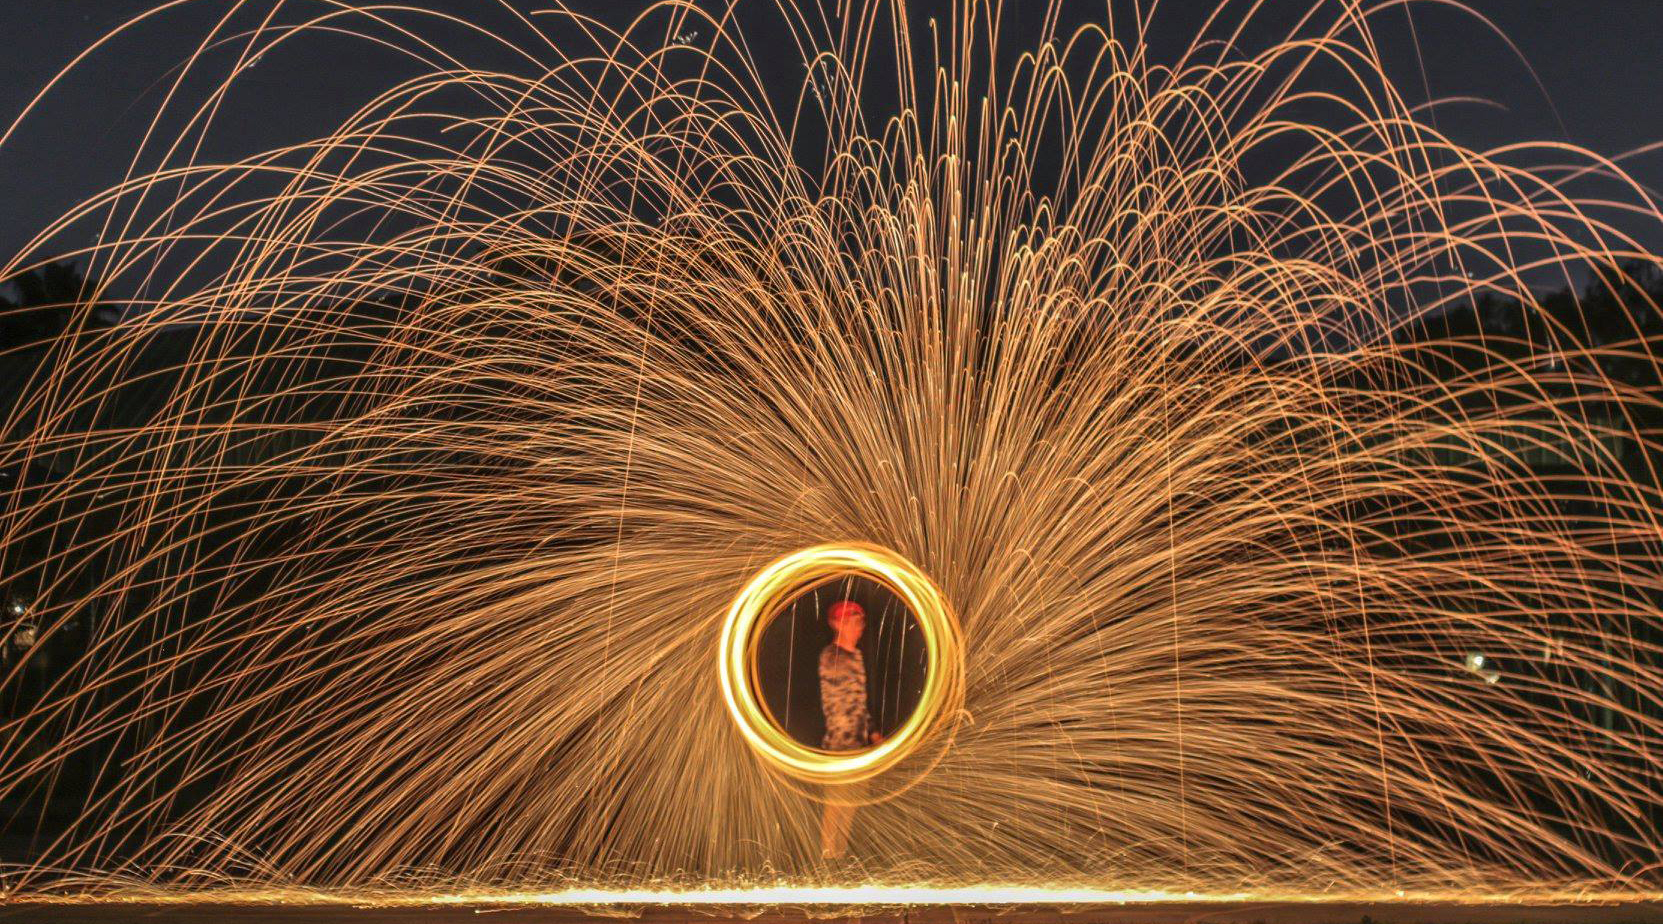 Lighting steel wool on fire and swinging it in circles to create an elaborate display of light